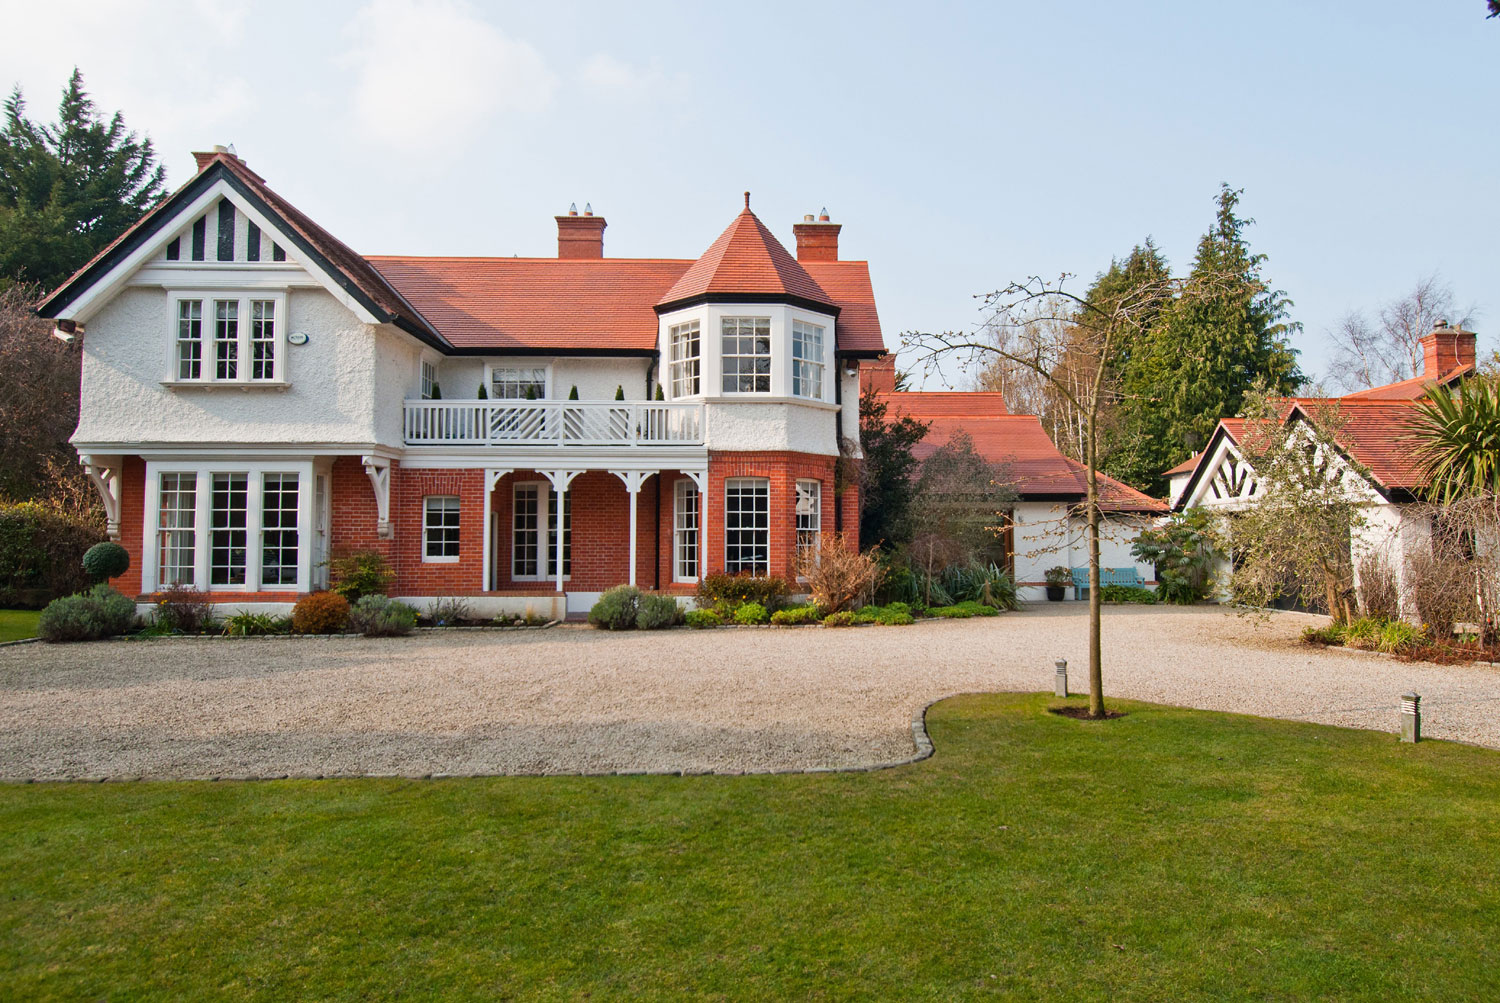 In Dublin, Ireland, Kenure is one of the finest homes in the affluent suburb of Foxrock. The historic property stands on an acre of secluded and imaginatively laid out gardens.